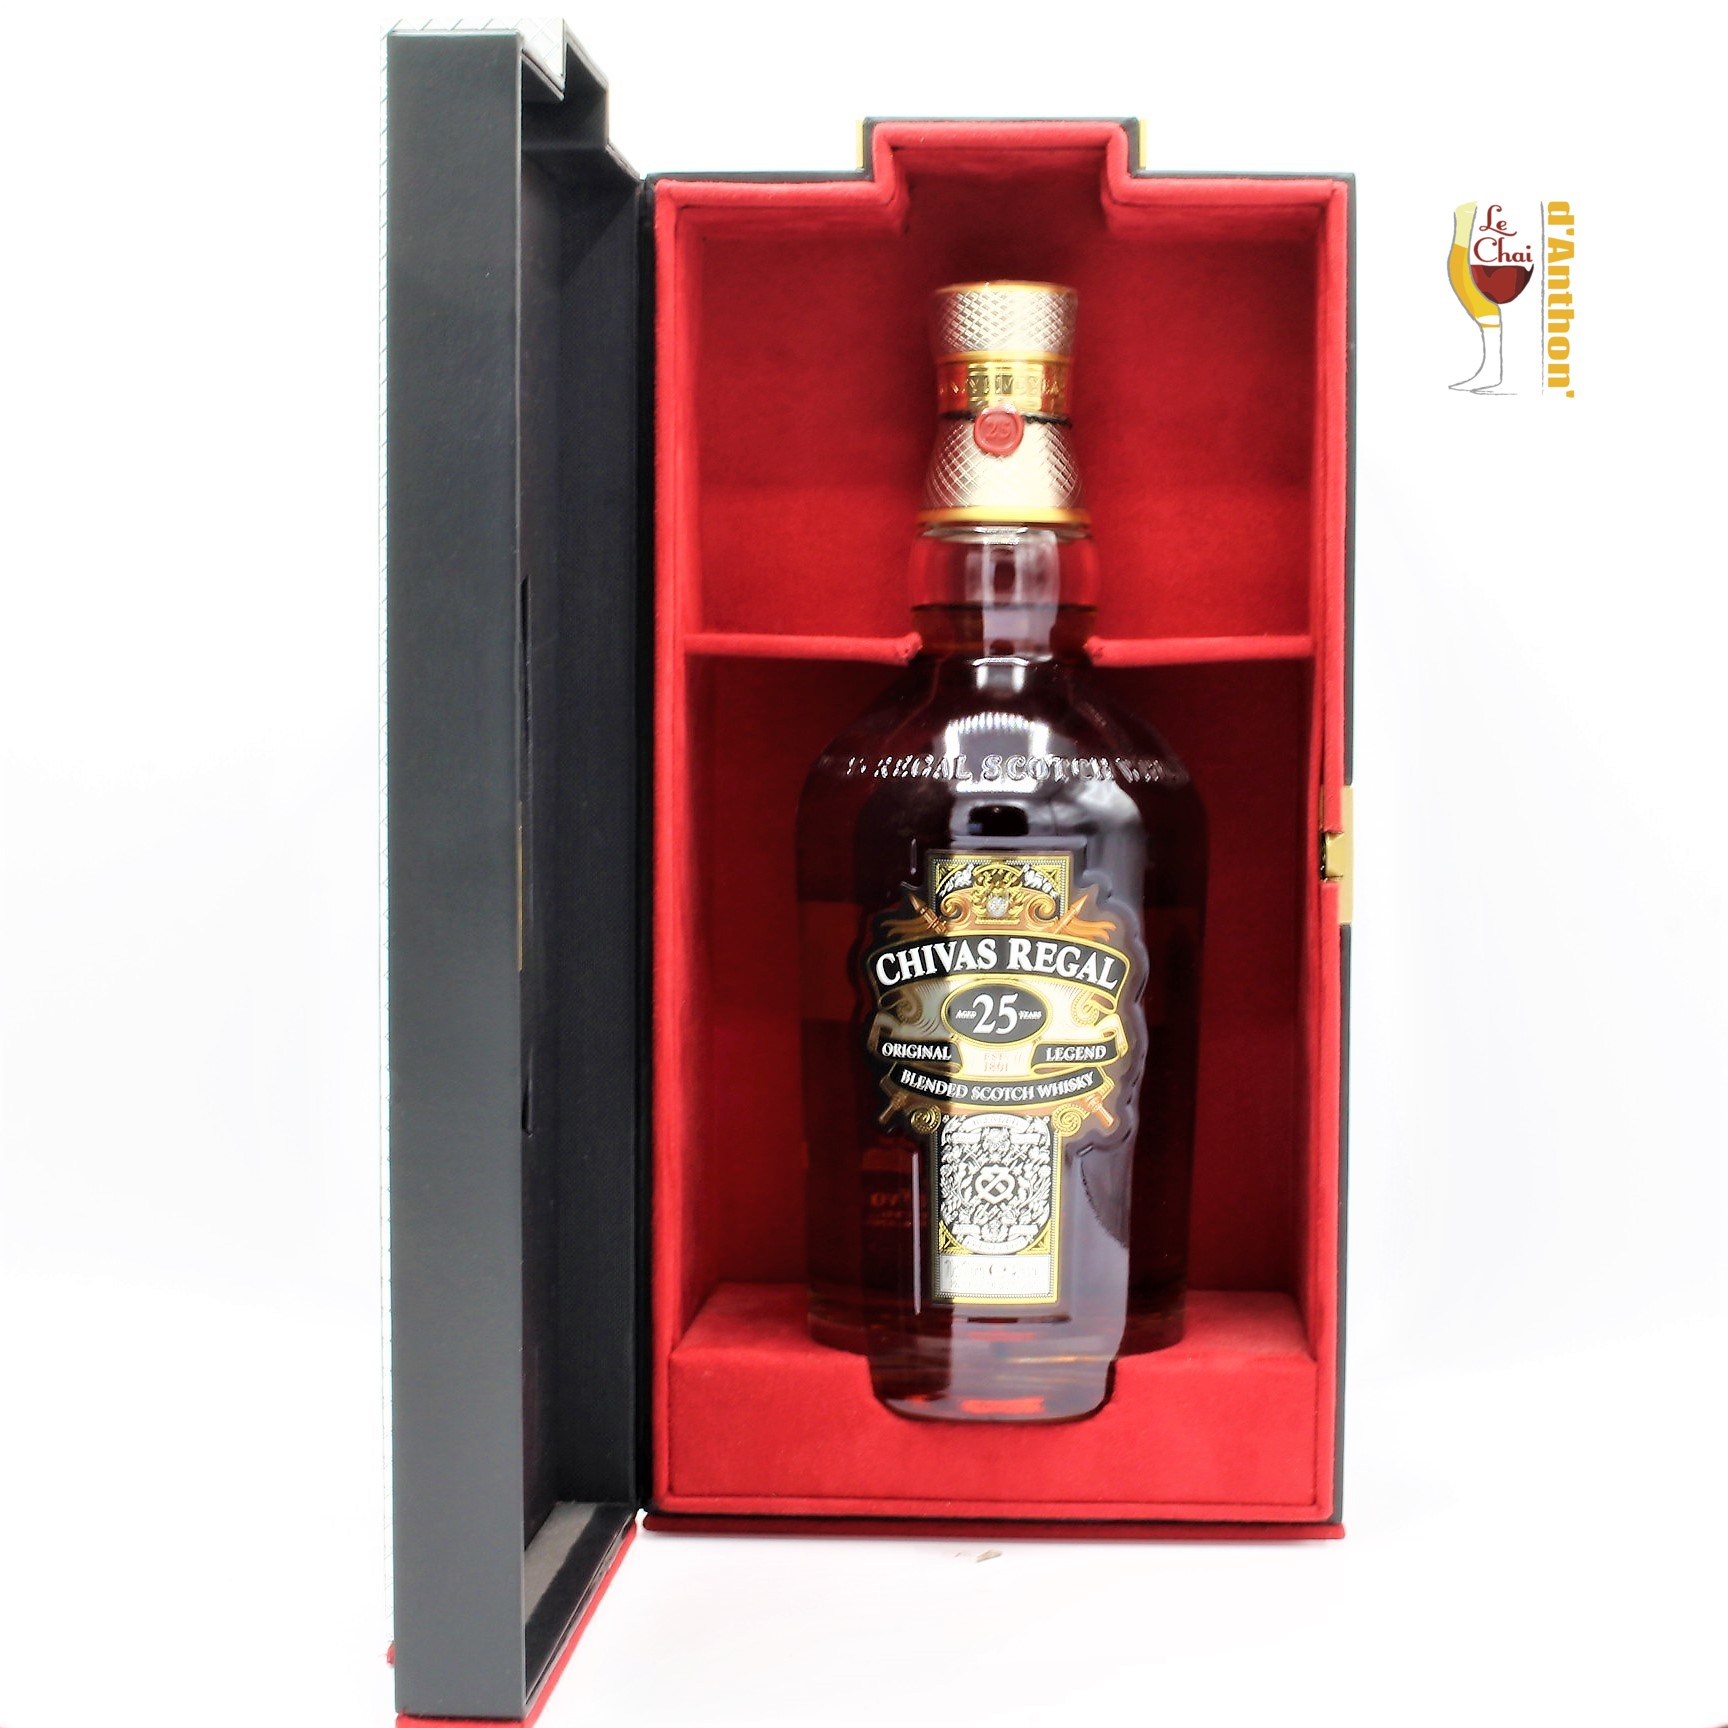 Le Chai D&926.JPG039;Anthon Spiritueux Whiskies Scotch Blend Chivas Regal 25 Ans 70cl(2) 926